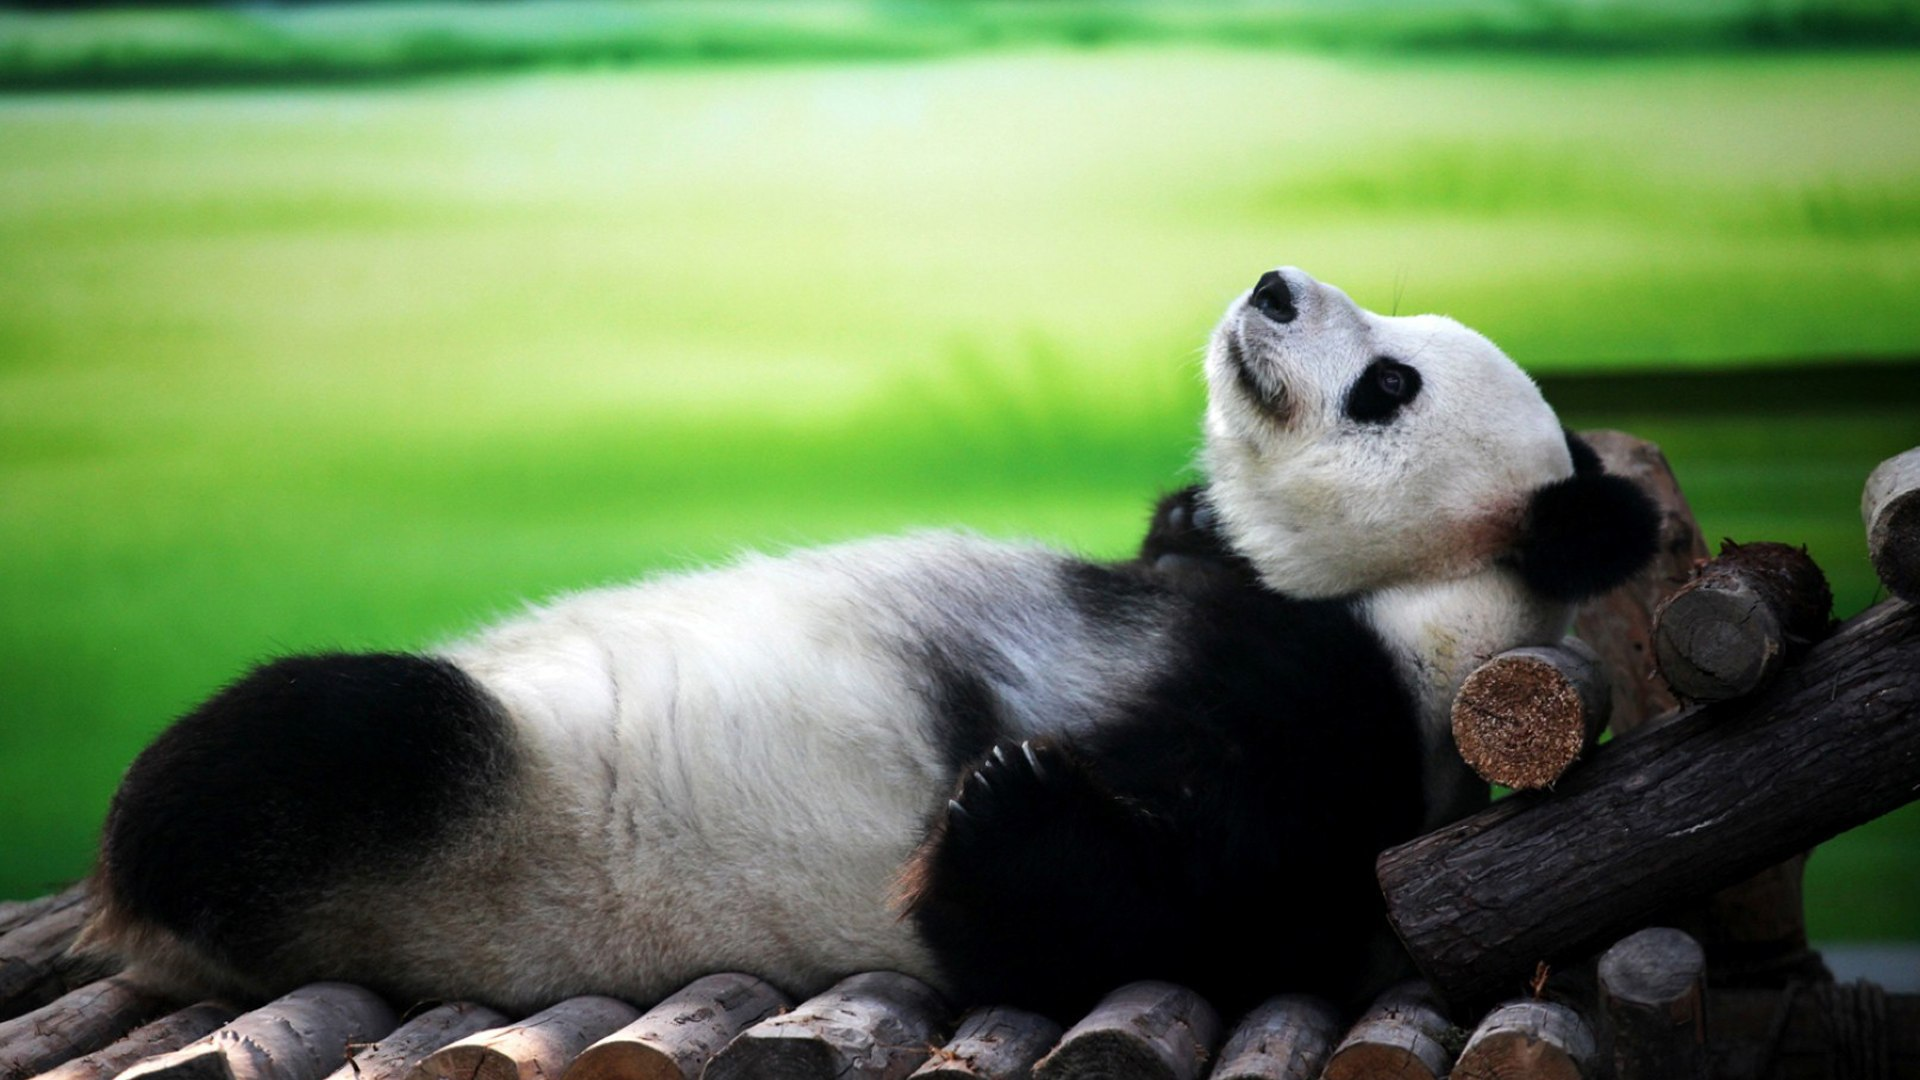 Animals___Bears_Panda_lying_on_his_back_096730_